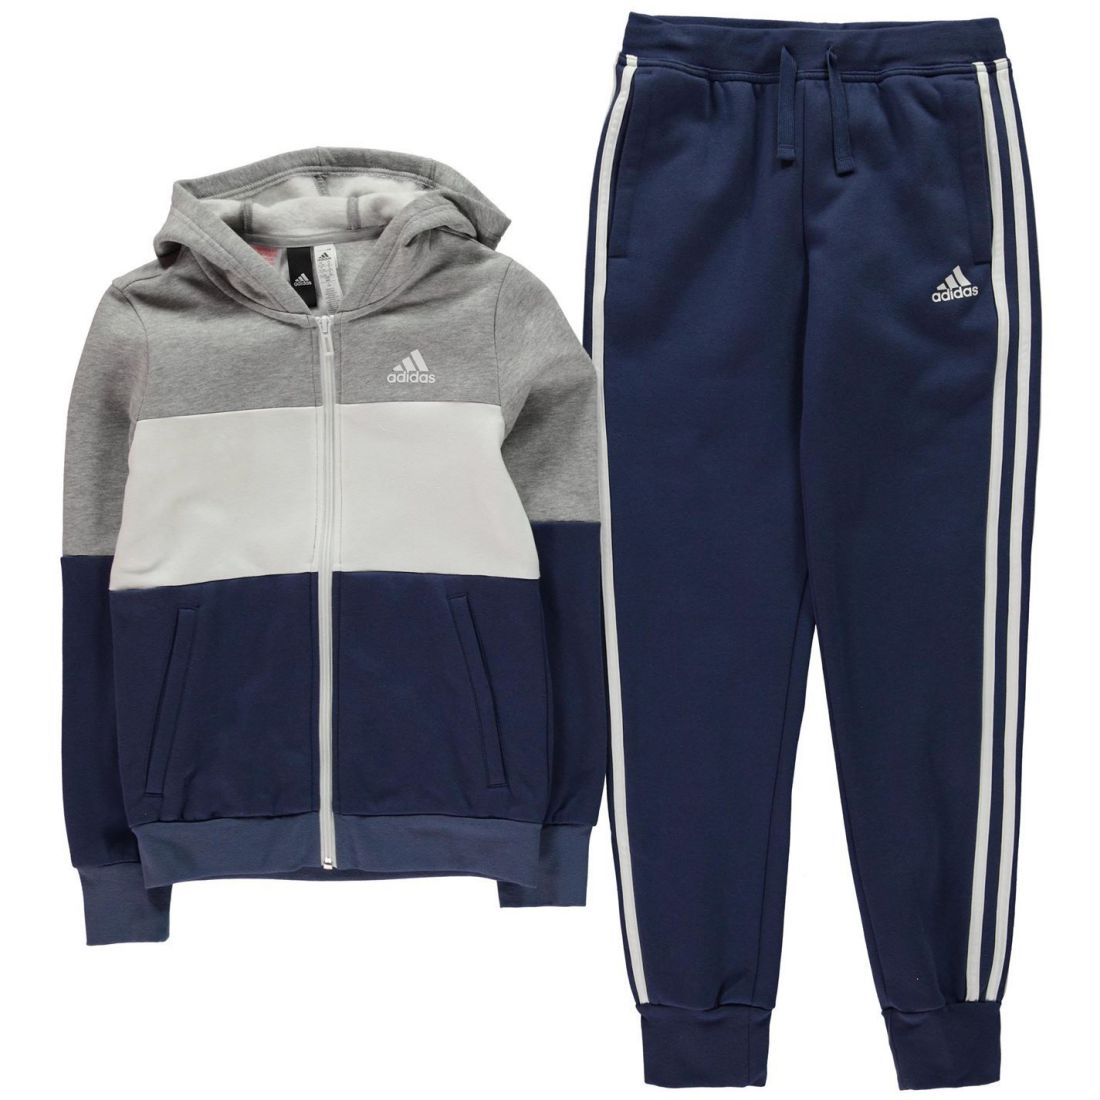 adidas Kids Girls YG Tracksuit Junior Top  c849744abfc